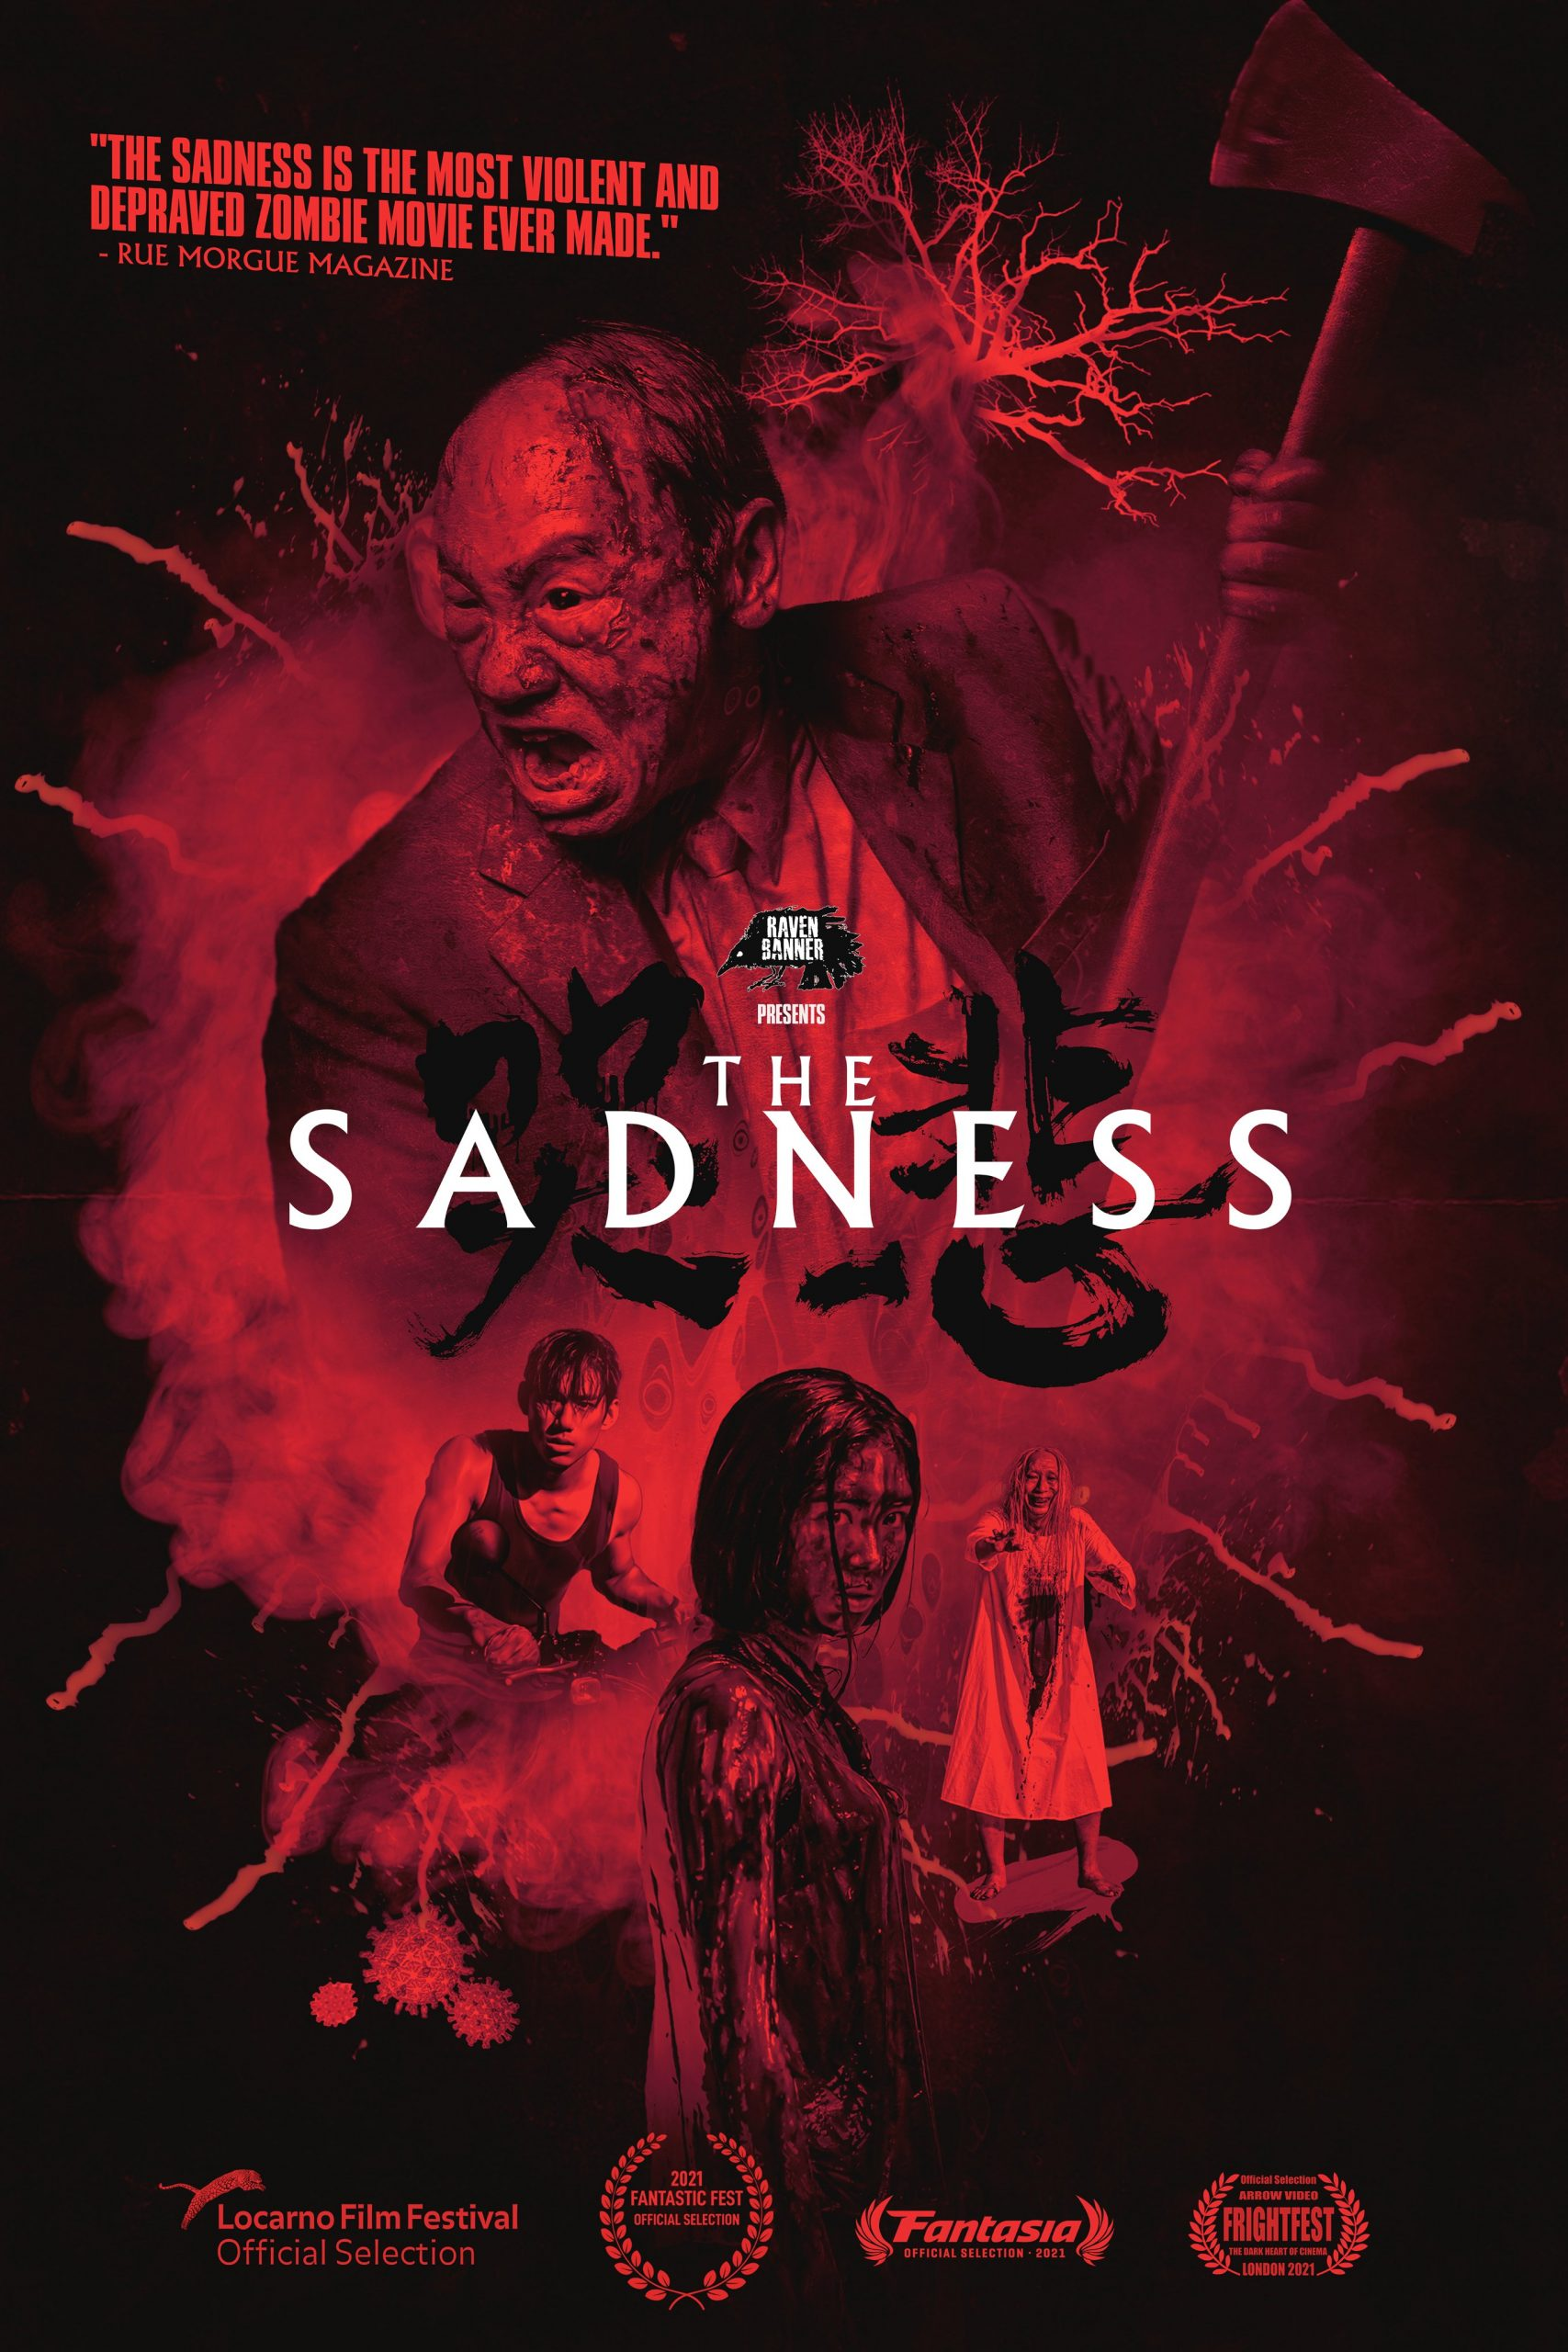 Poster for The Sadness